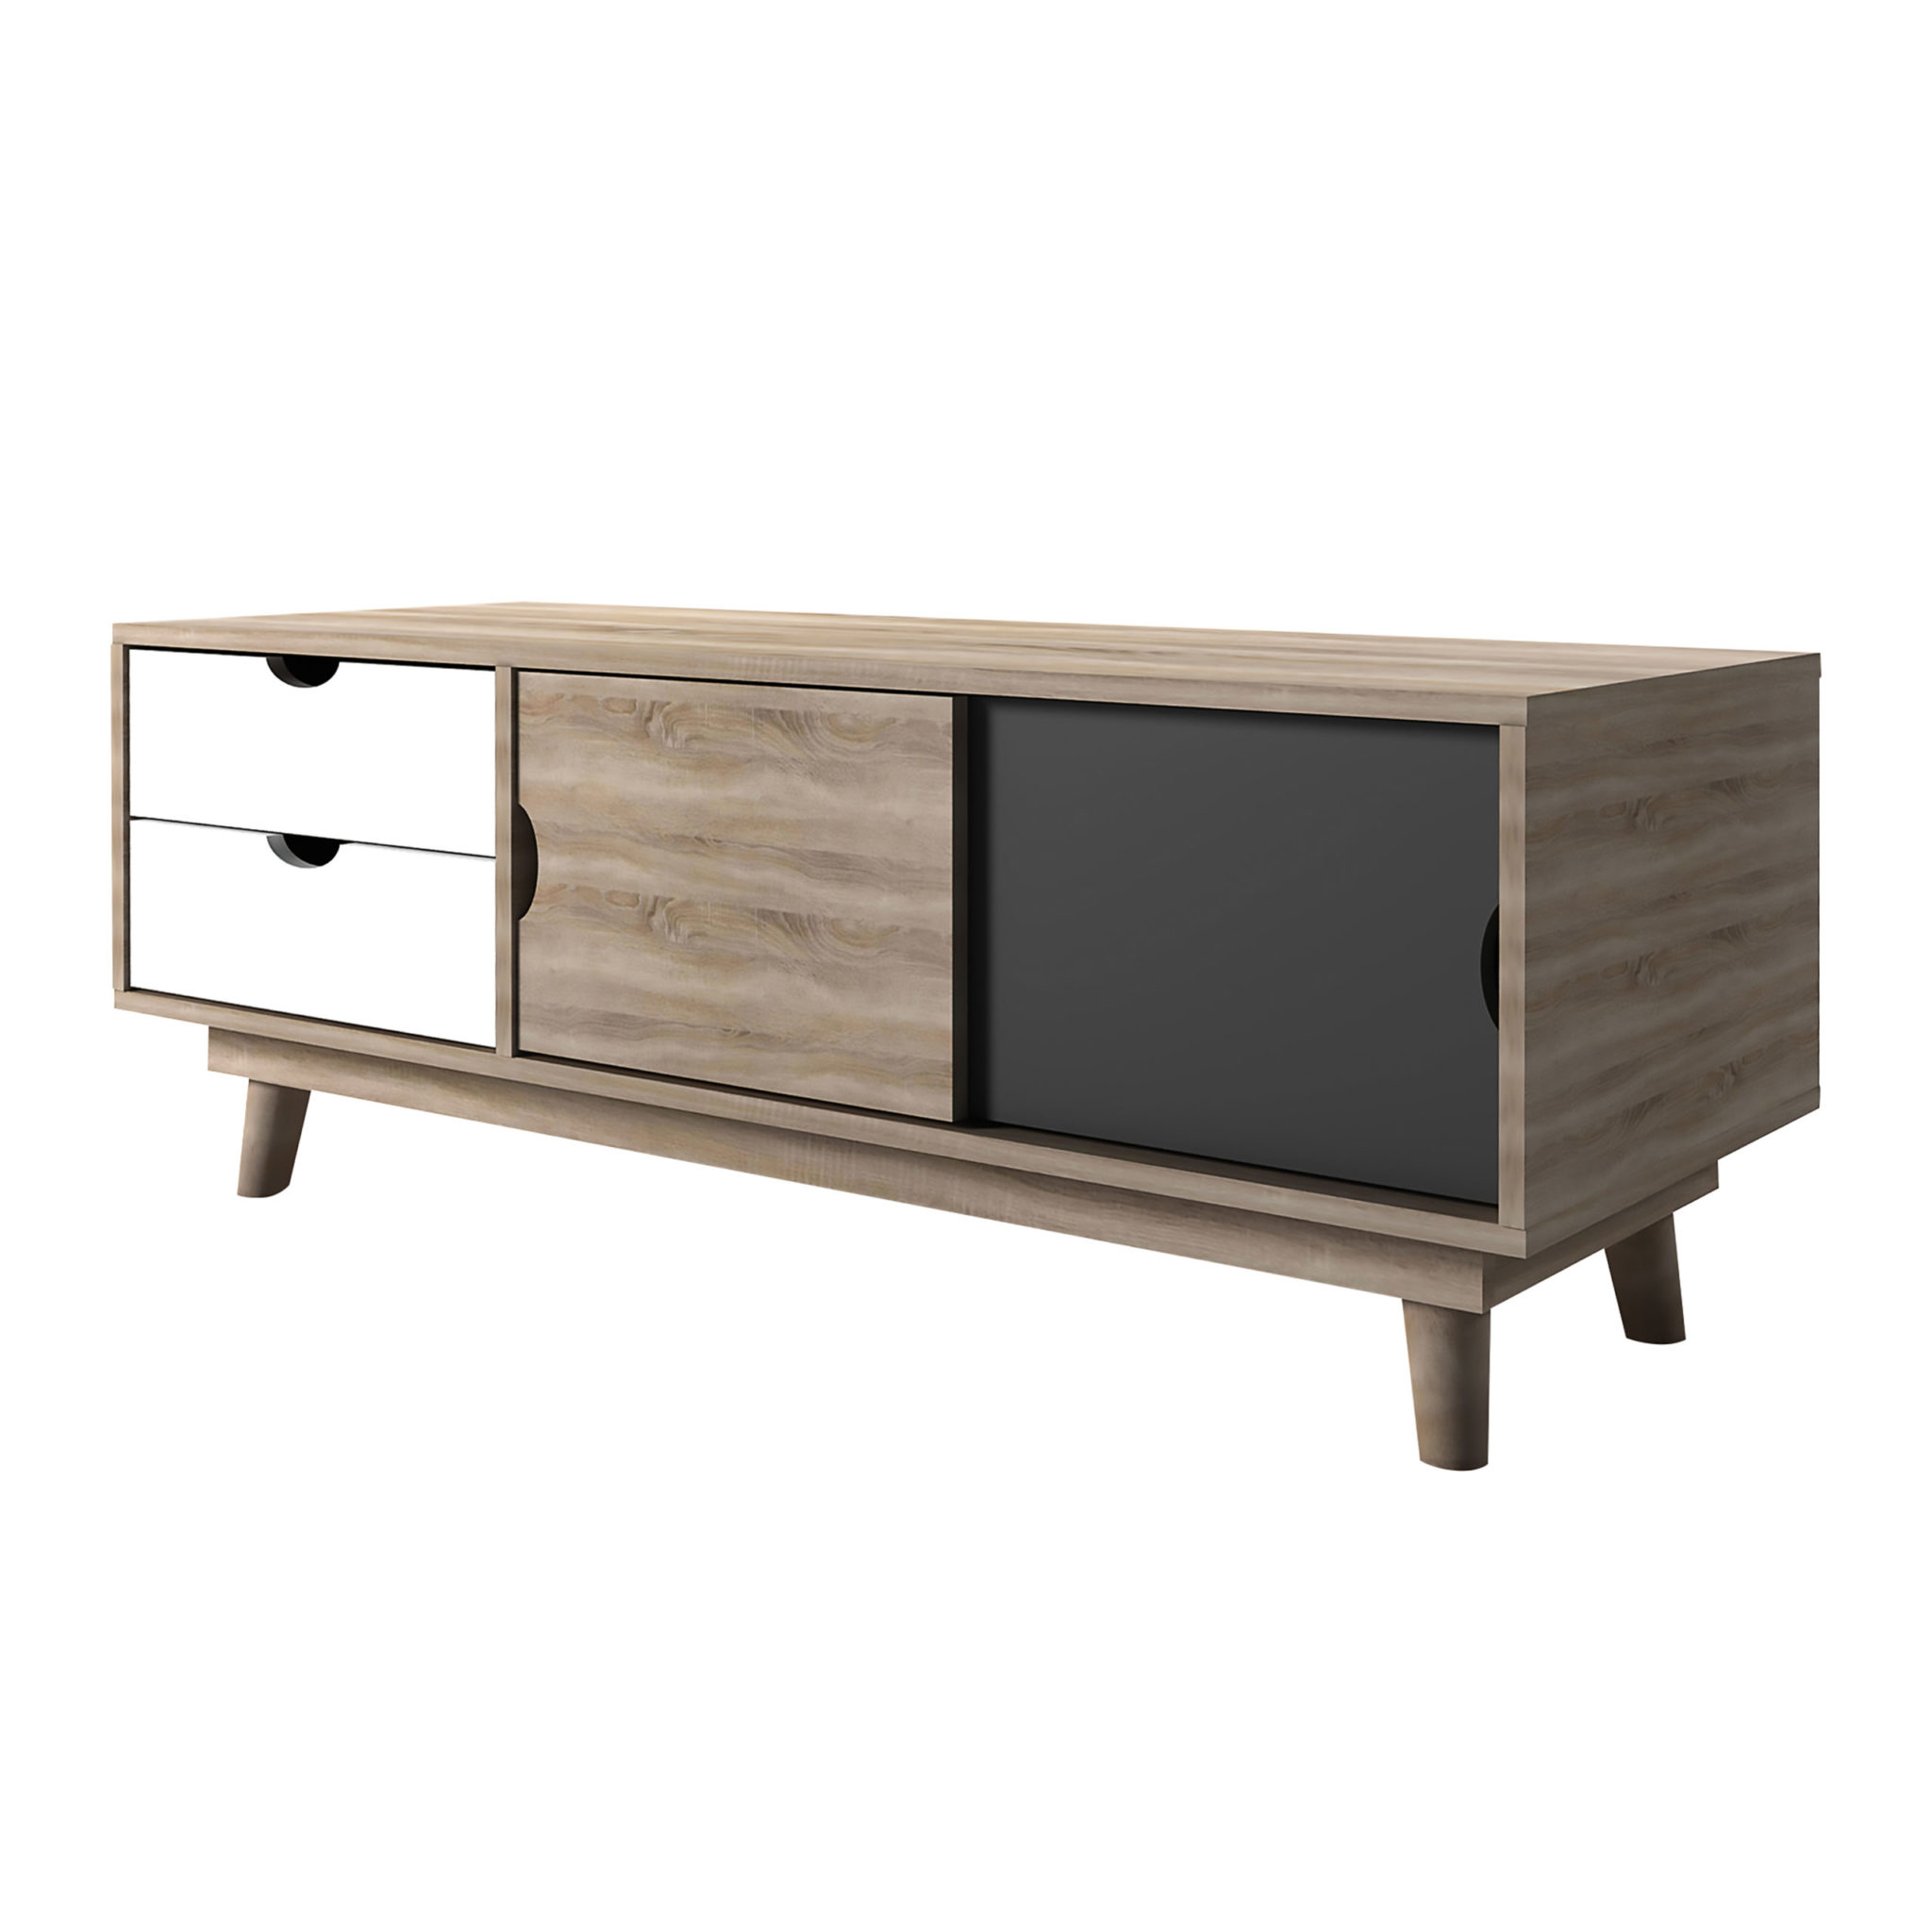 Secily Oak TV Unit Grey